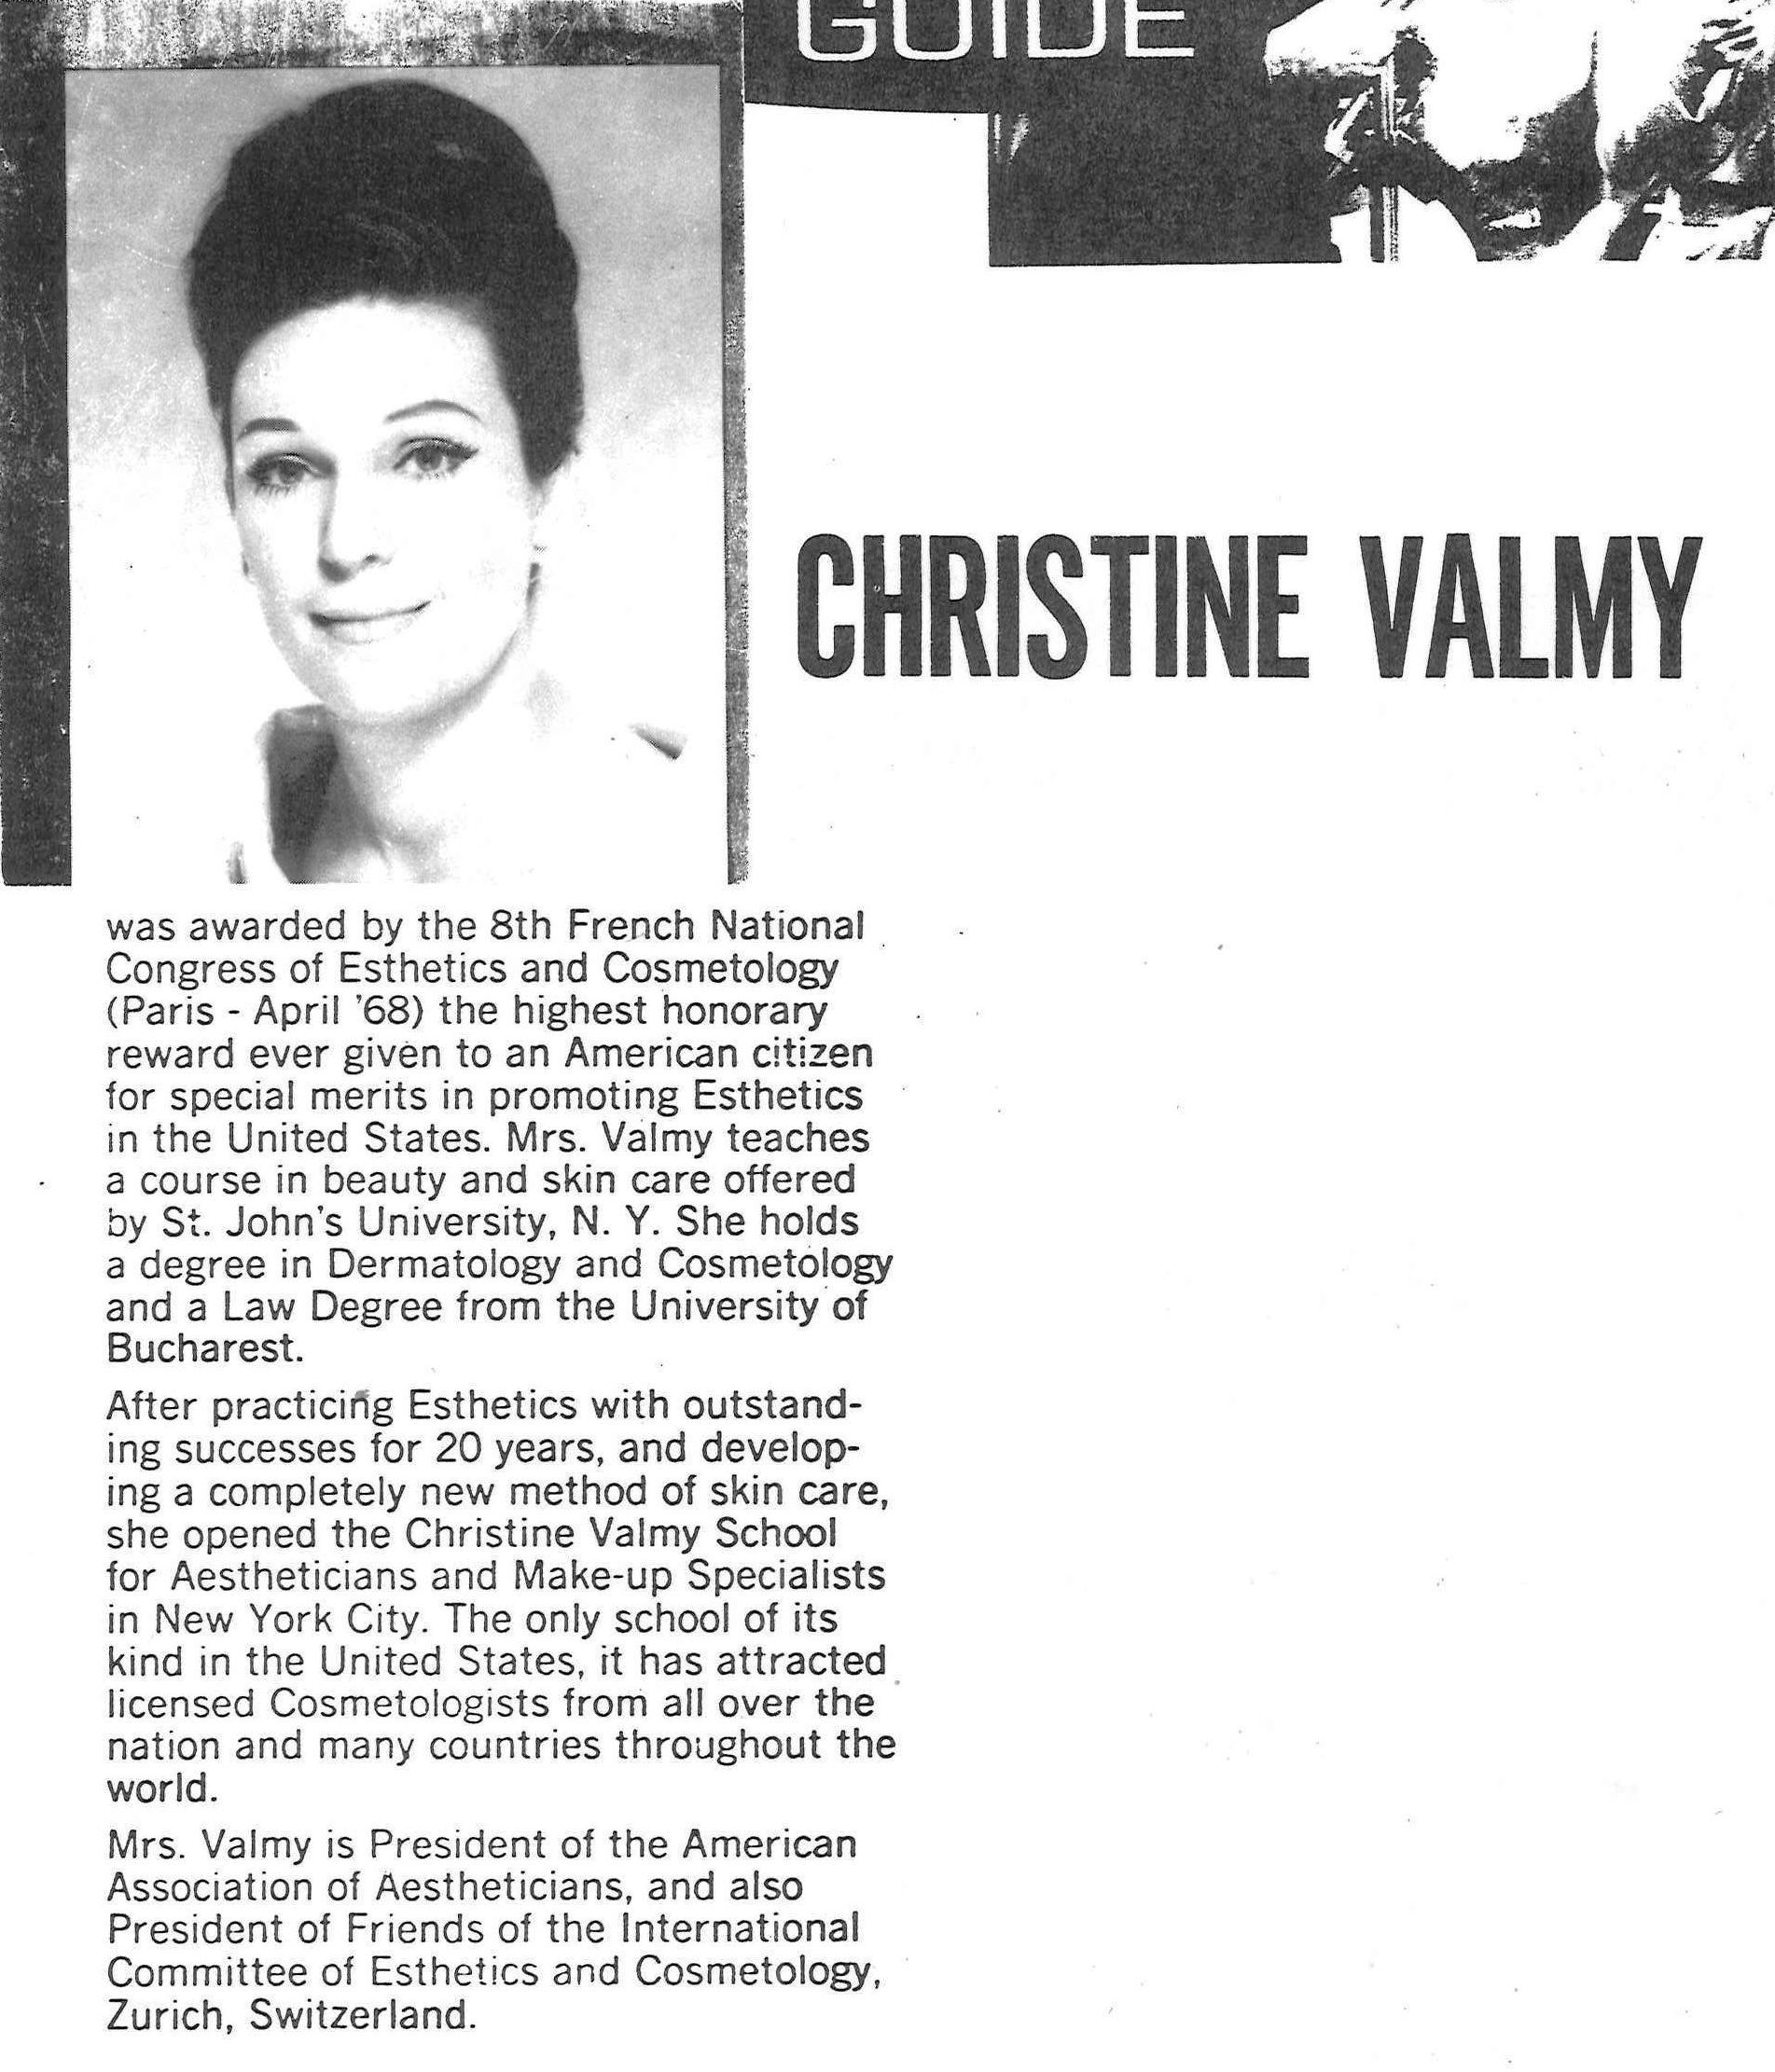 Old article discussing the successes of Christine Valmy.